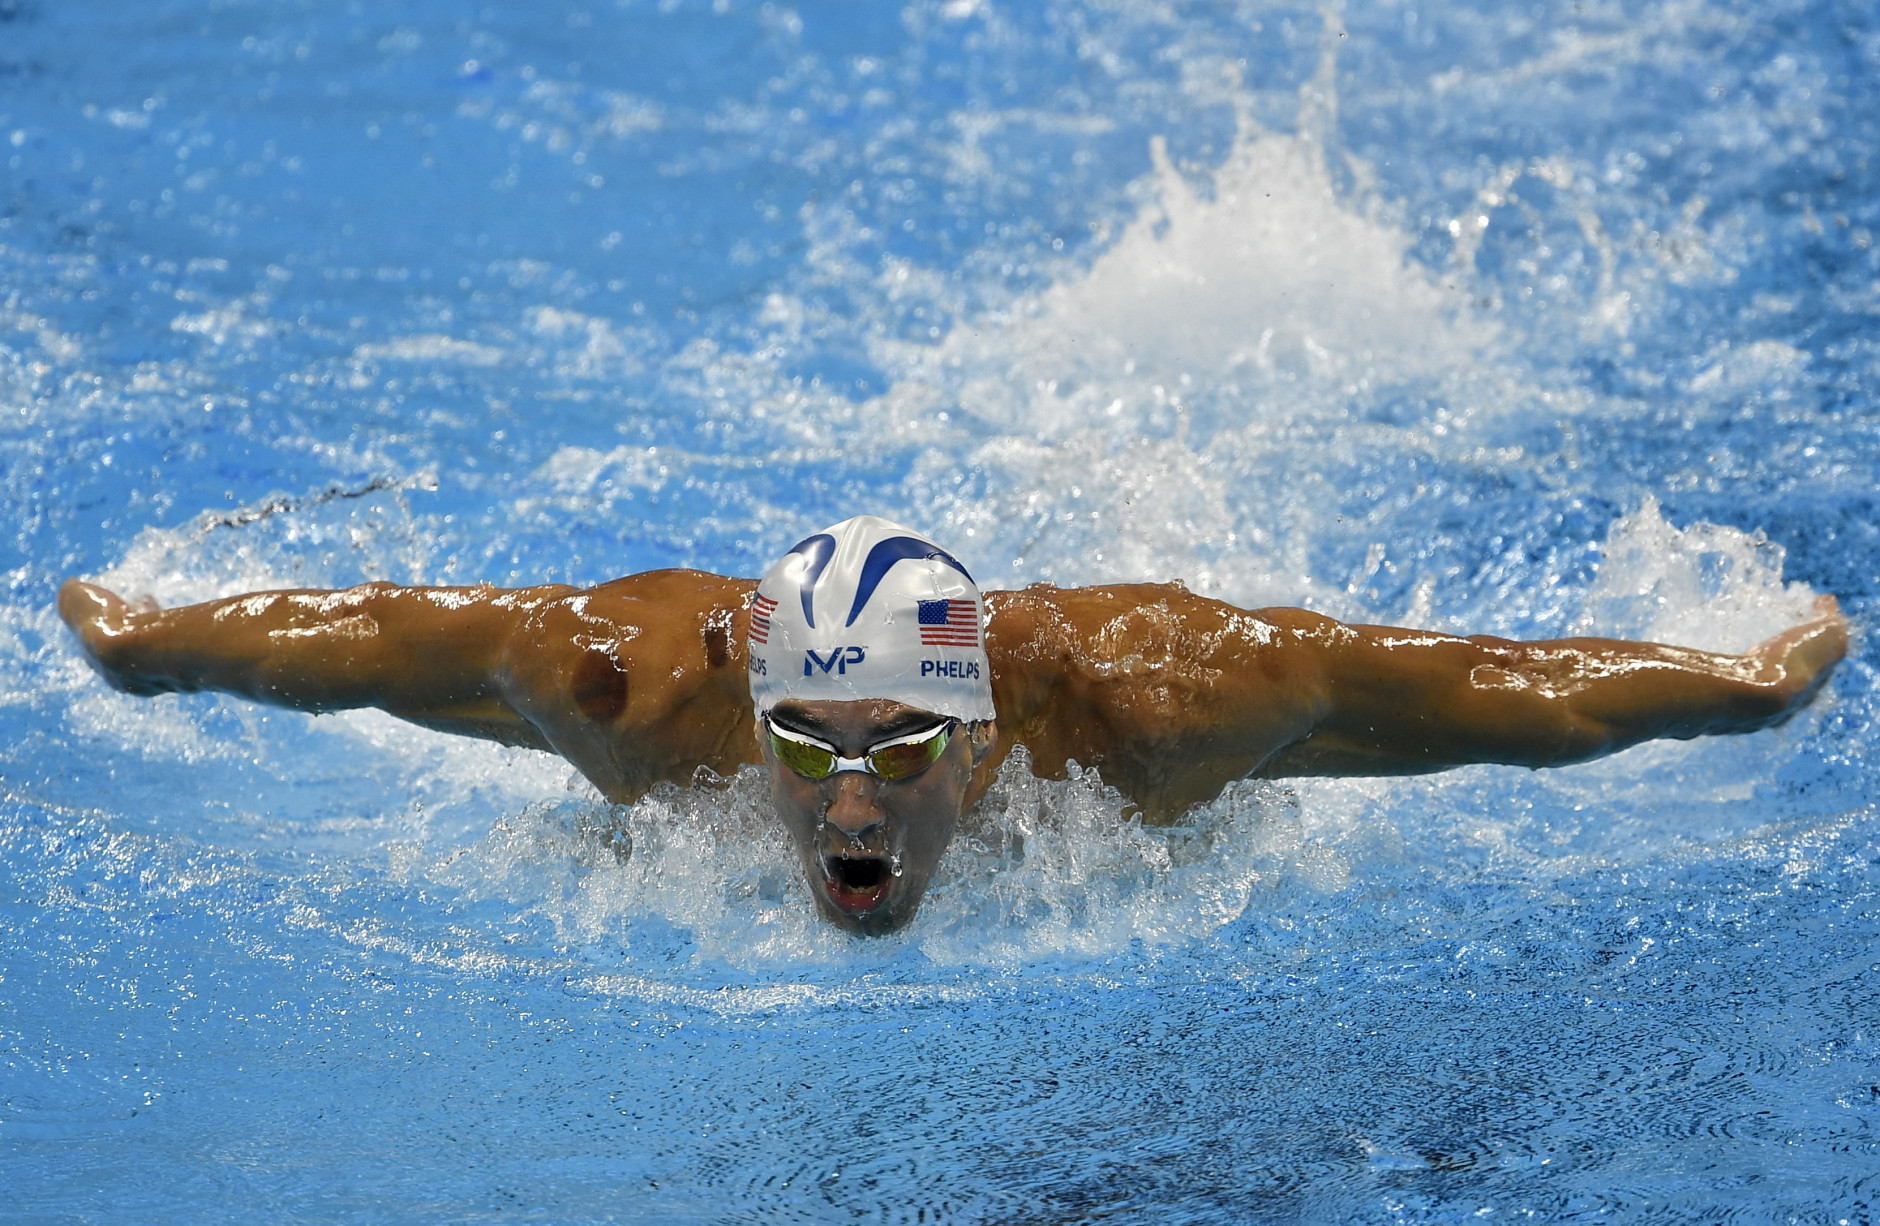 United States' Michael Phelps competes in a men's 200-meter butterfly heat during the swimming competitions at the 2016 Summer Olympics, Monday, Aug. 8, 2016, in Rio de Janeiro, Brazil. (AP Photo/Martin Meissner)